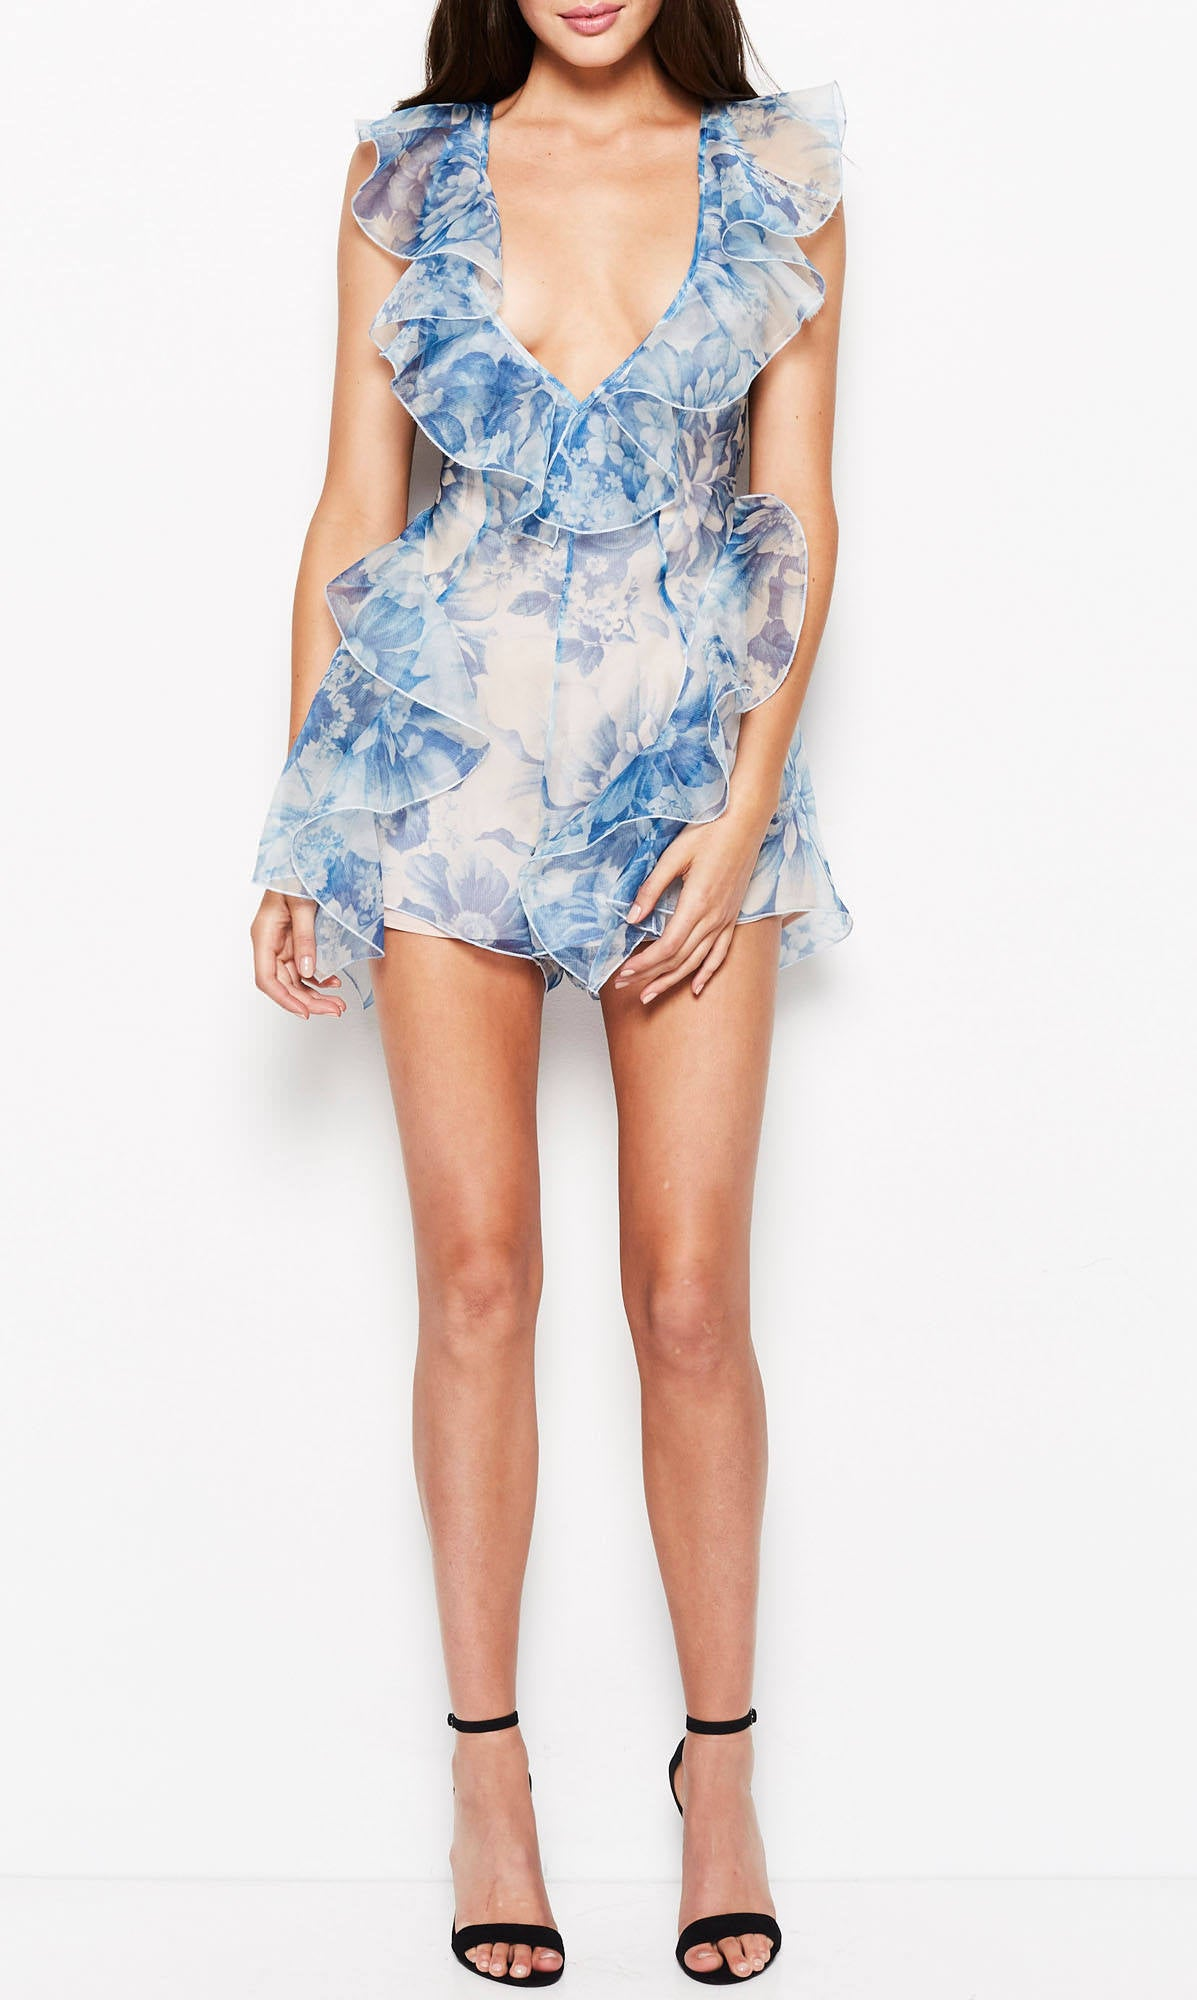 8fbc90acfab Alice Mccall Sherbert Bomb Playsuit Ocean Blue Floral (For Hire)